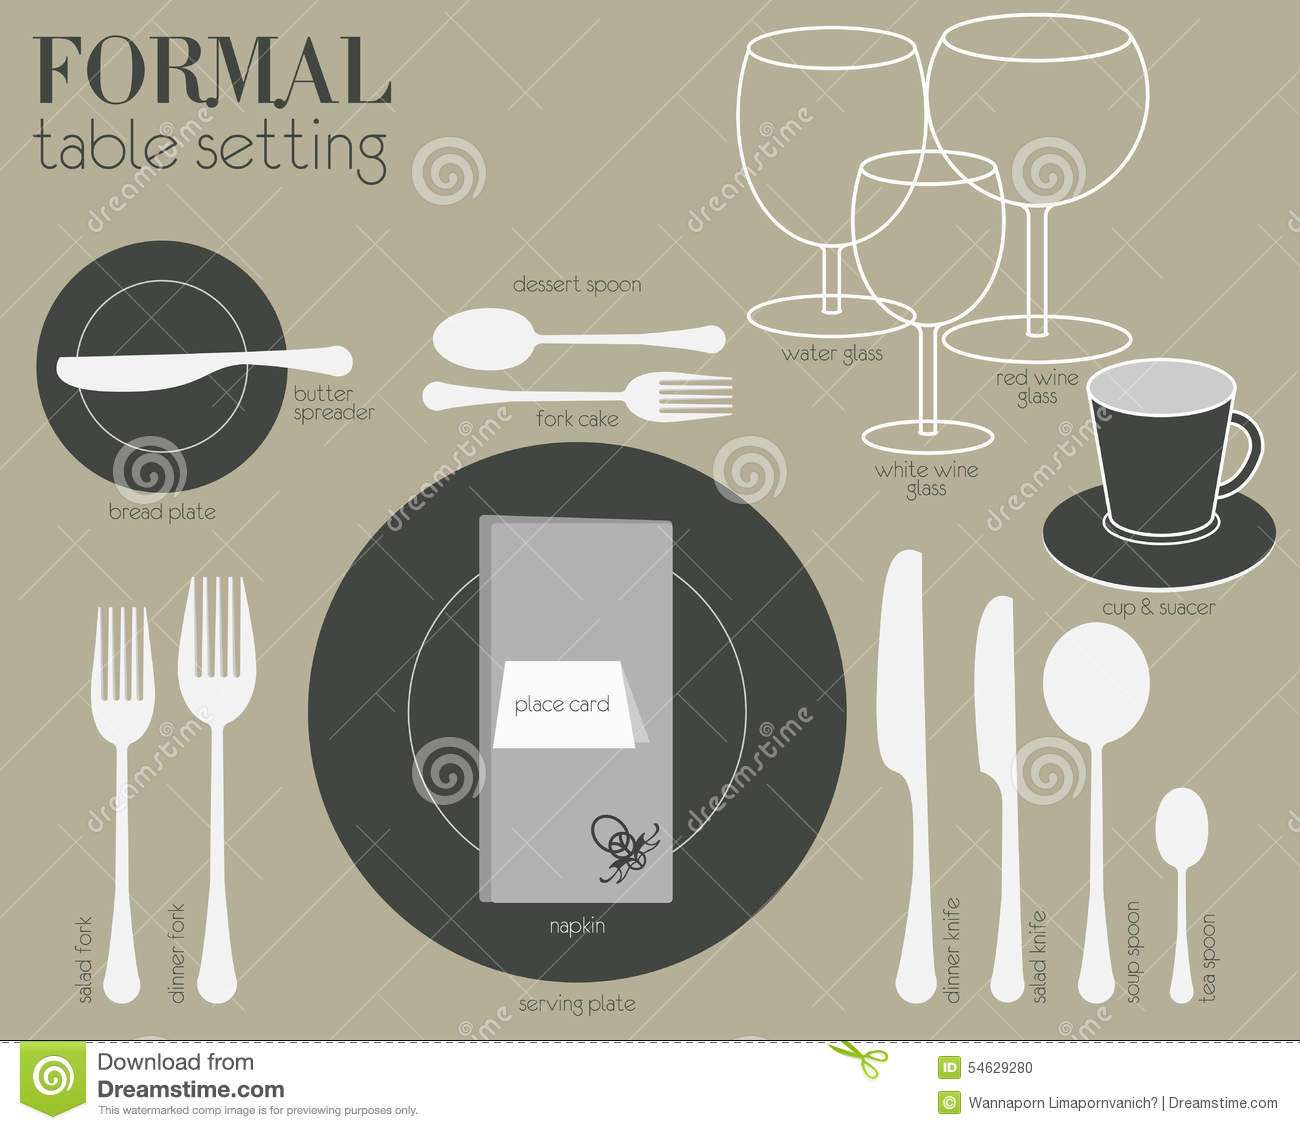 FORMAL TABLE SETTING Stock Vector. Illustration Of Setting